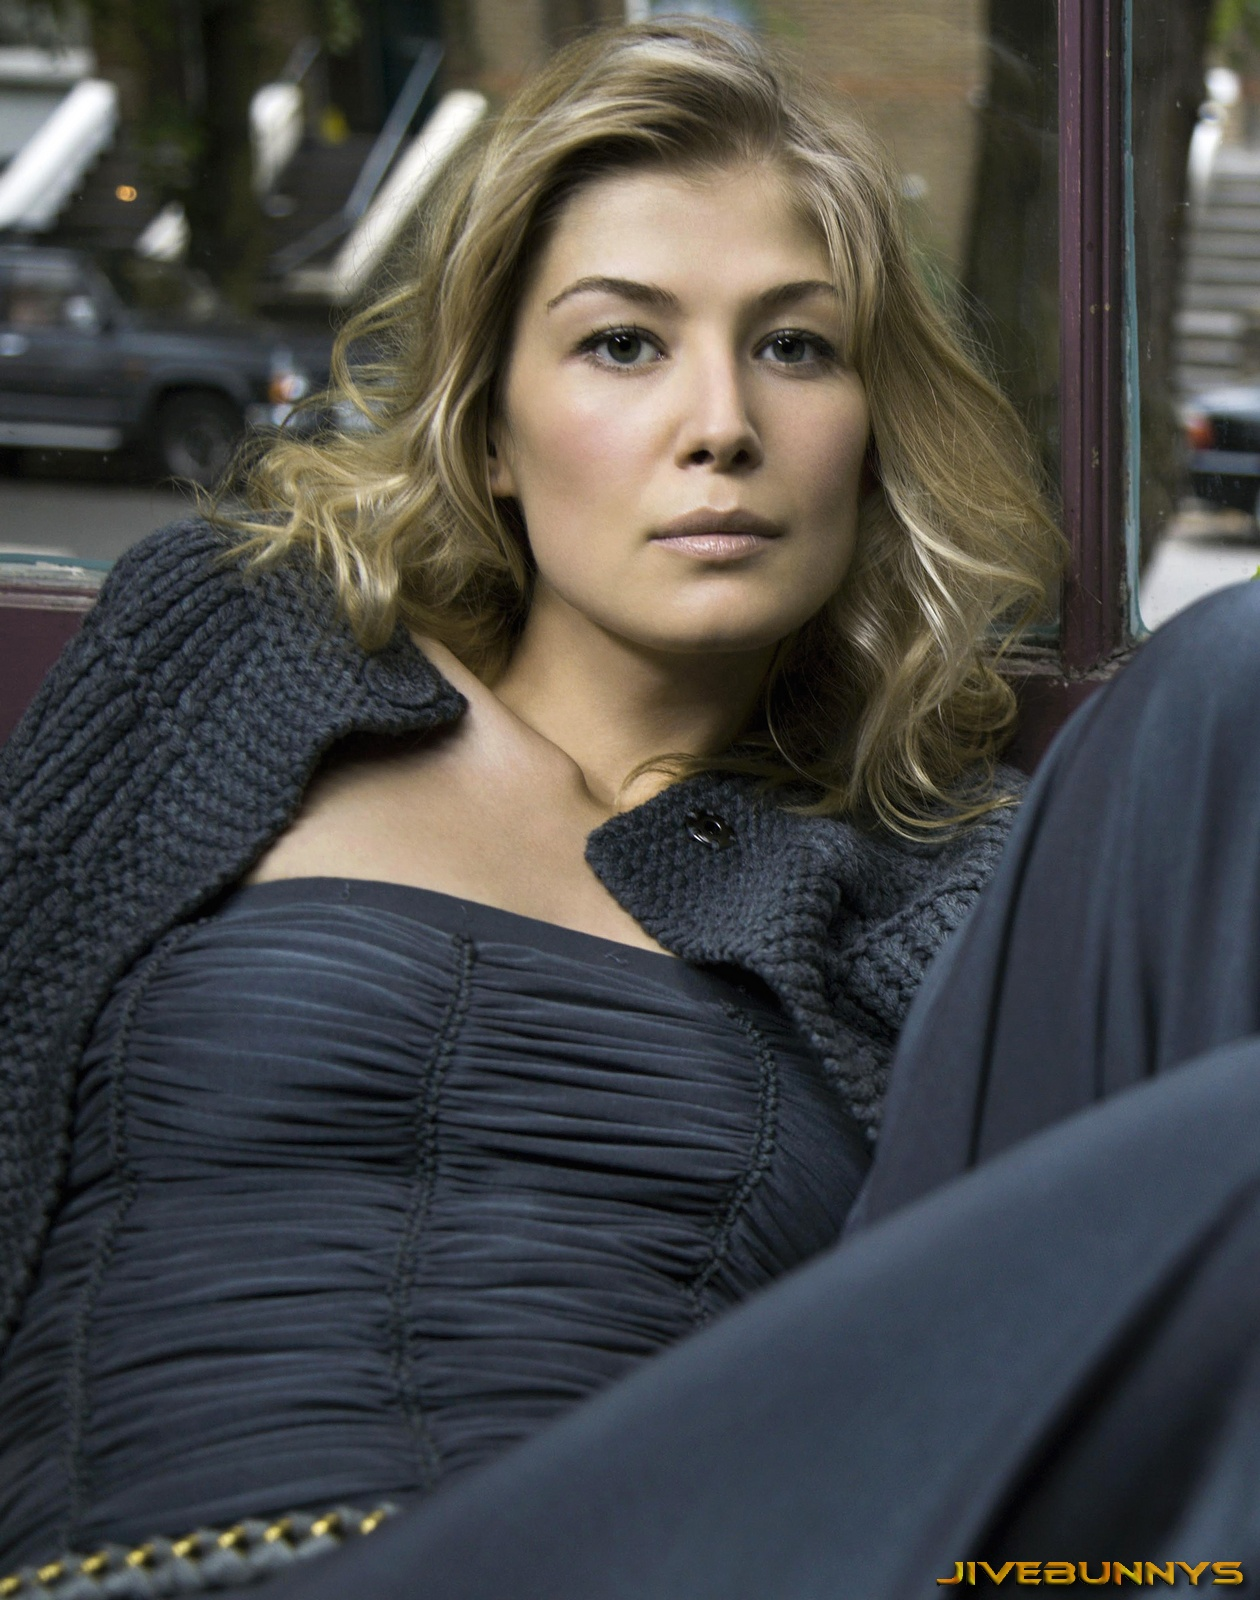 rosamund pike special pictures 14 film actresses